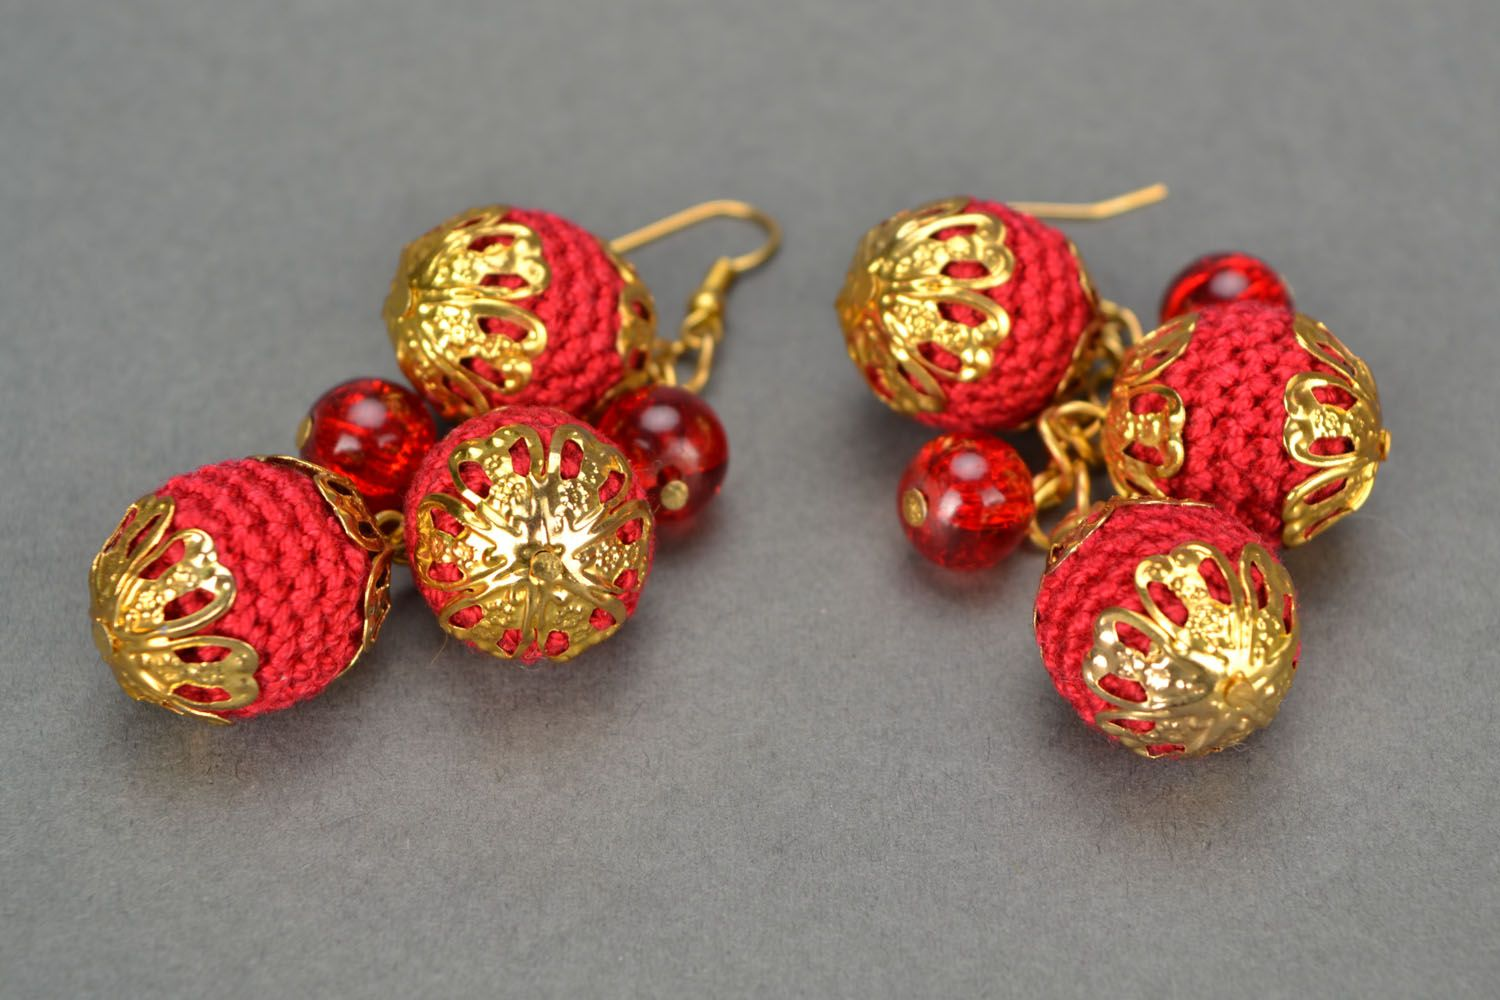 Crochet earrings with charms Cherry Glamor photo 5